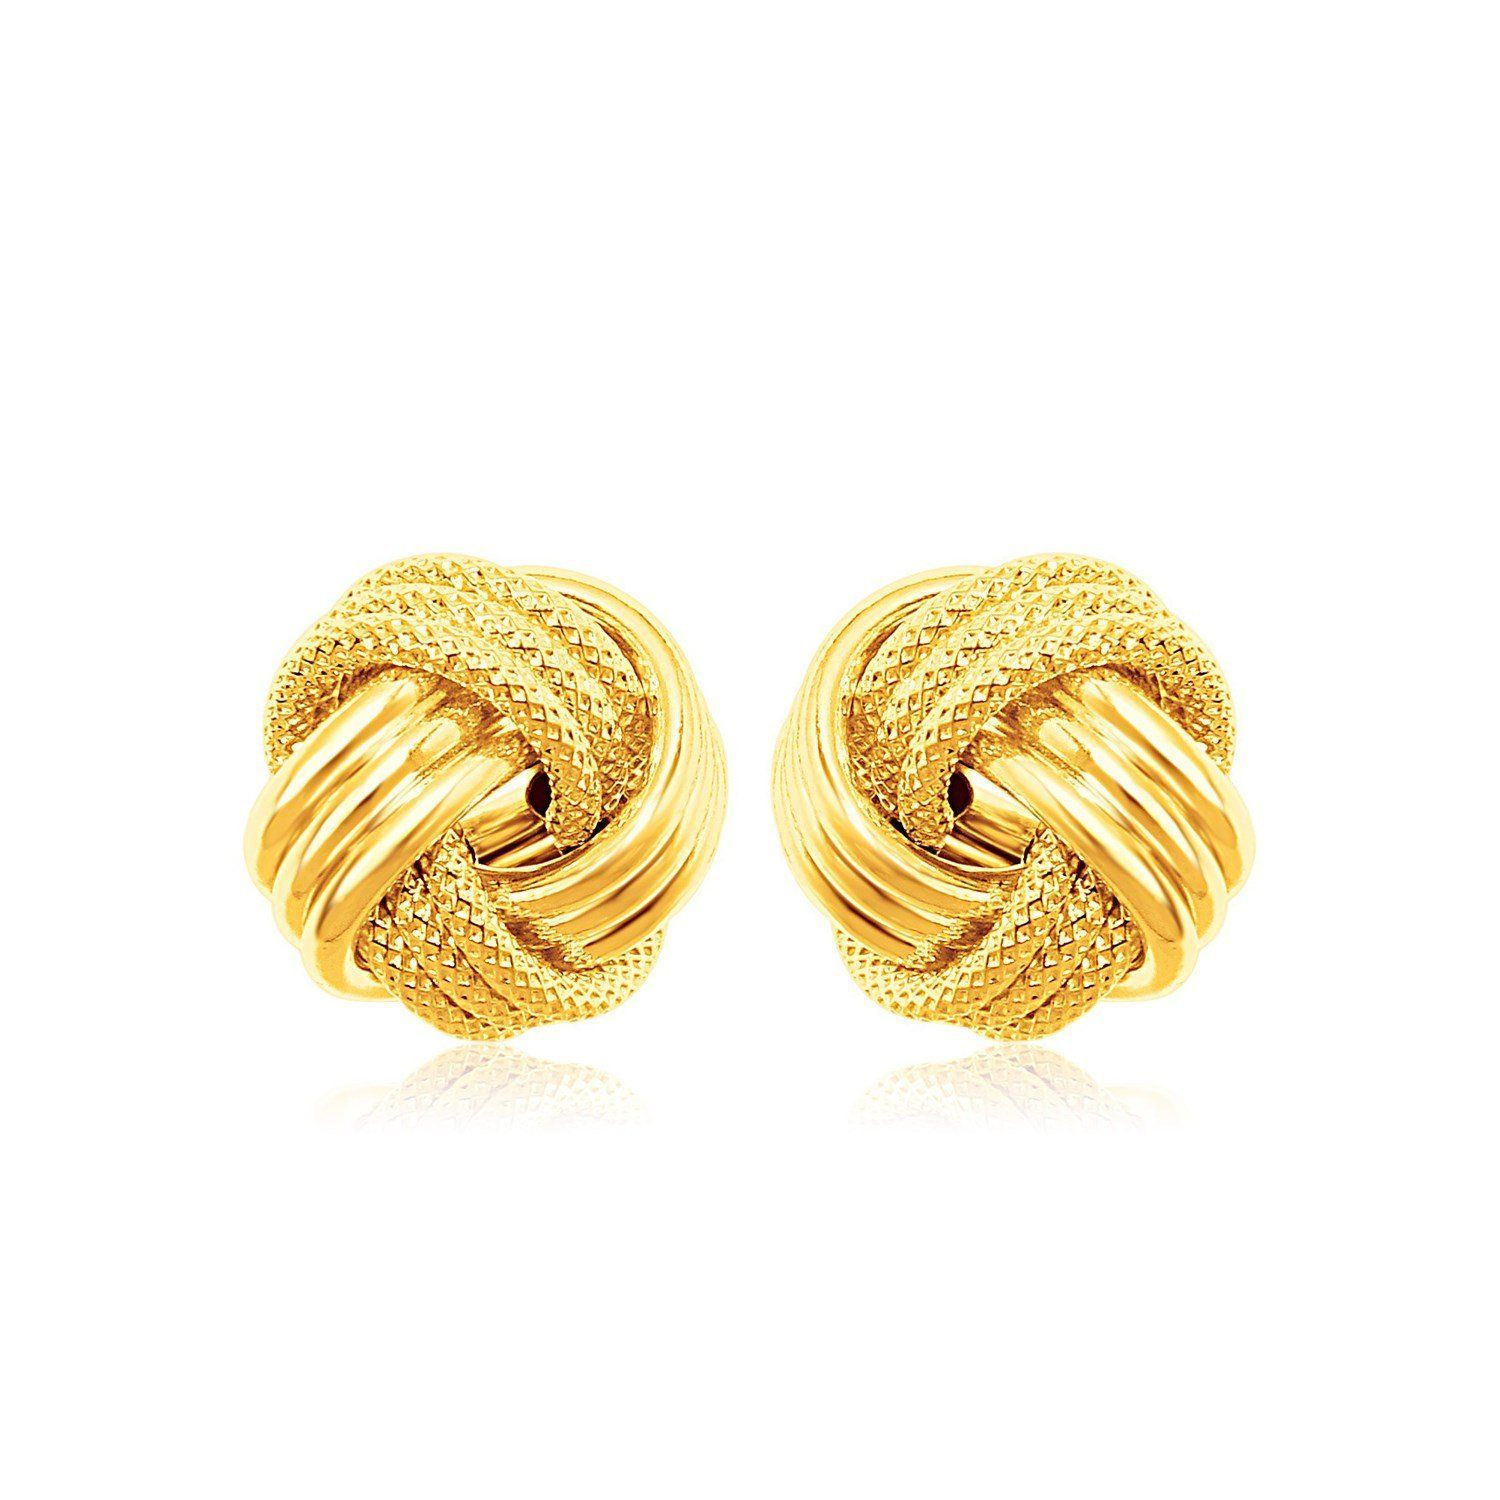 81471c463 14k Yellow Gold Love Knot with Ridge Texture Earrings | Love Knot Jewelry |  Jewelry knots, Earrings, Jewelry